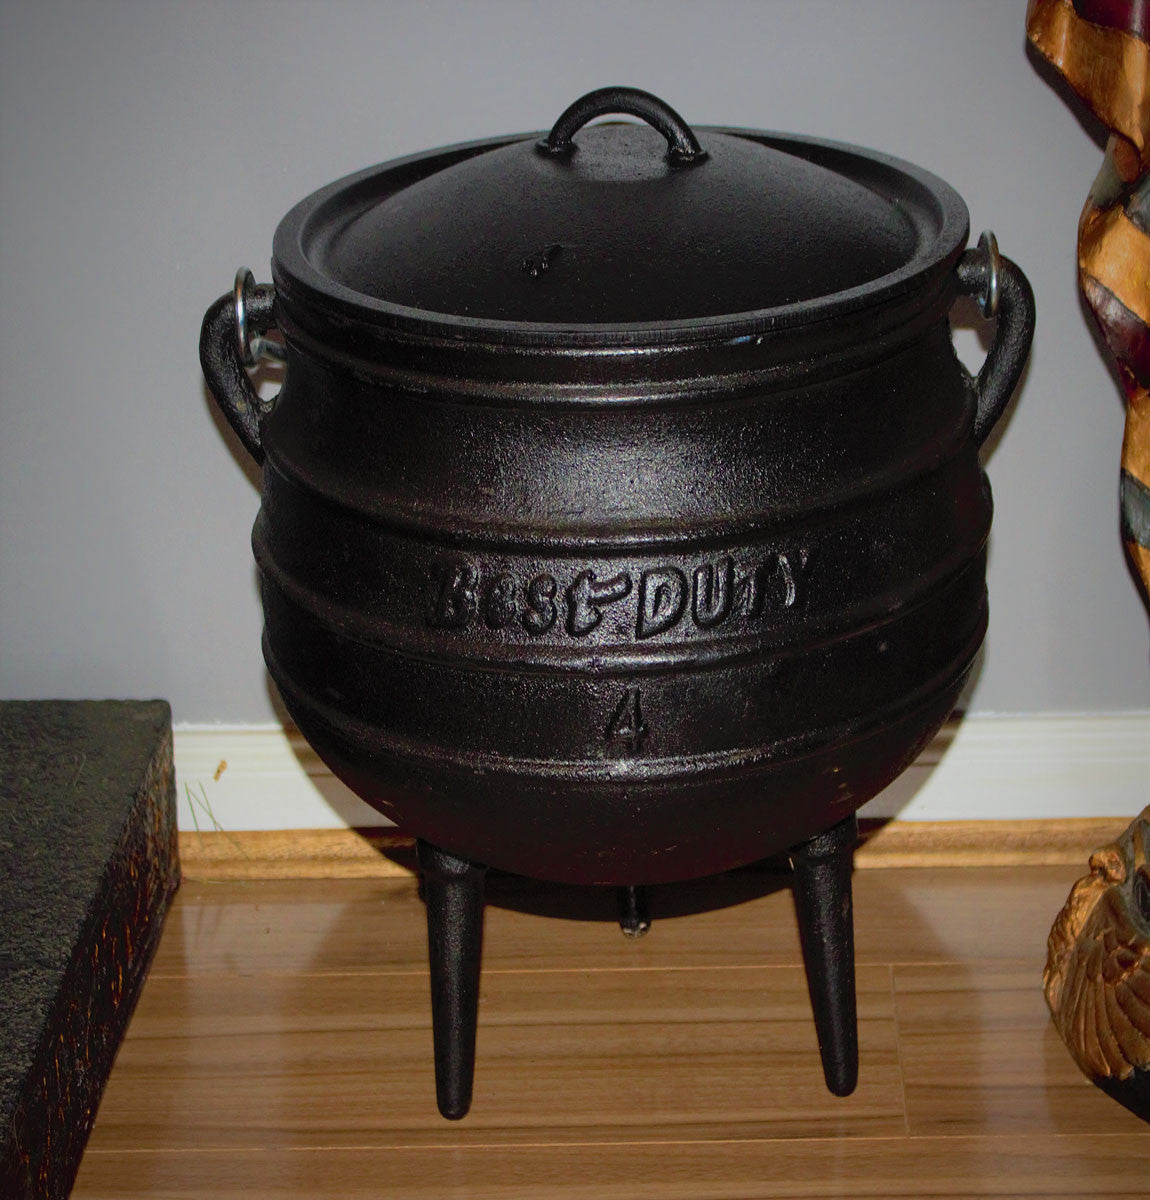 Cauldron Size 4  The cauldron is a feminine symbol, as seen in the tale of Cerridwen's cauldron, representing rebirth and renewal and the womb and the tomb ect…     Size: 4 (height 30cm, mouth circumference 30cm)  Volume: 9.3 litres  Weight: 13.6kg     Please note: The cauldrons are made from cast iron and have been treated making them safe for spell work and cooking. They have also been pre-sealed with a quality vegetable oil to prevent rust. If looked after correctly these cauldrons will last many many ye